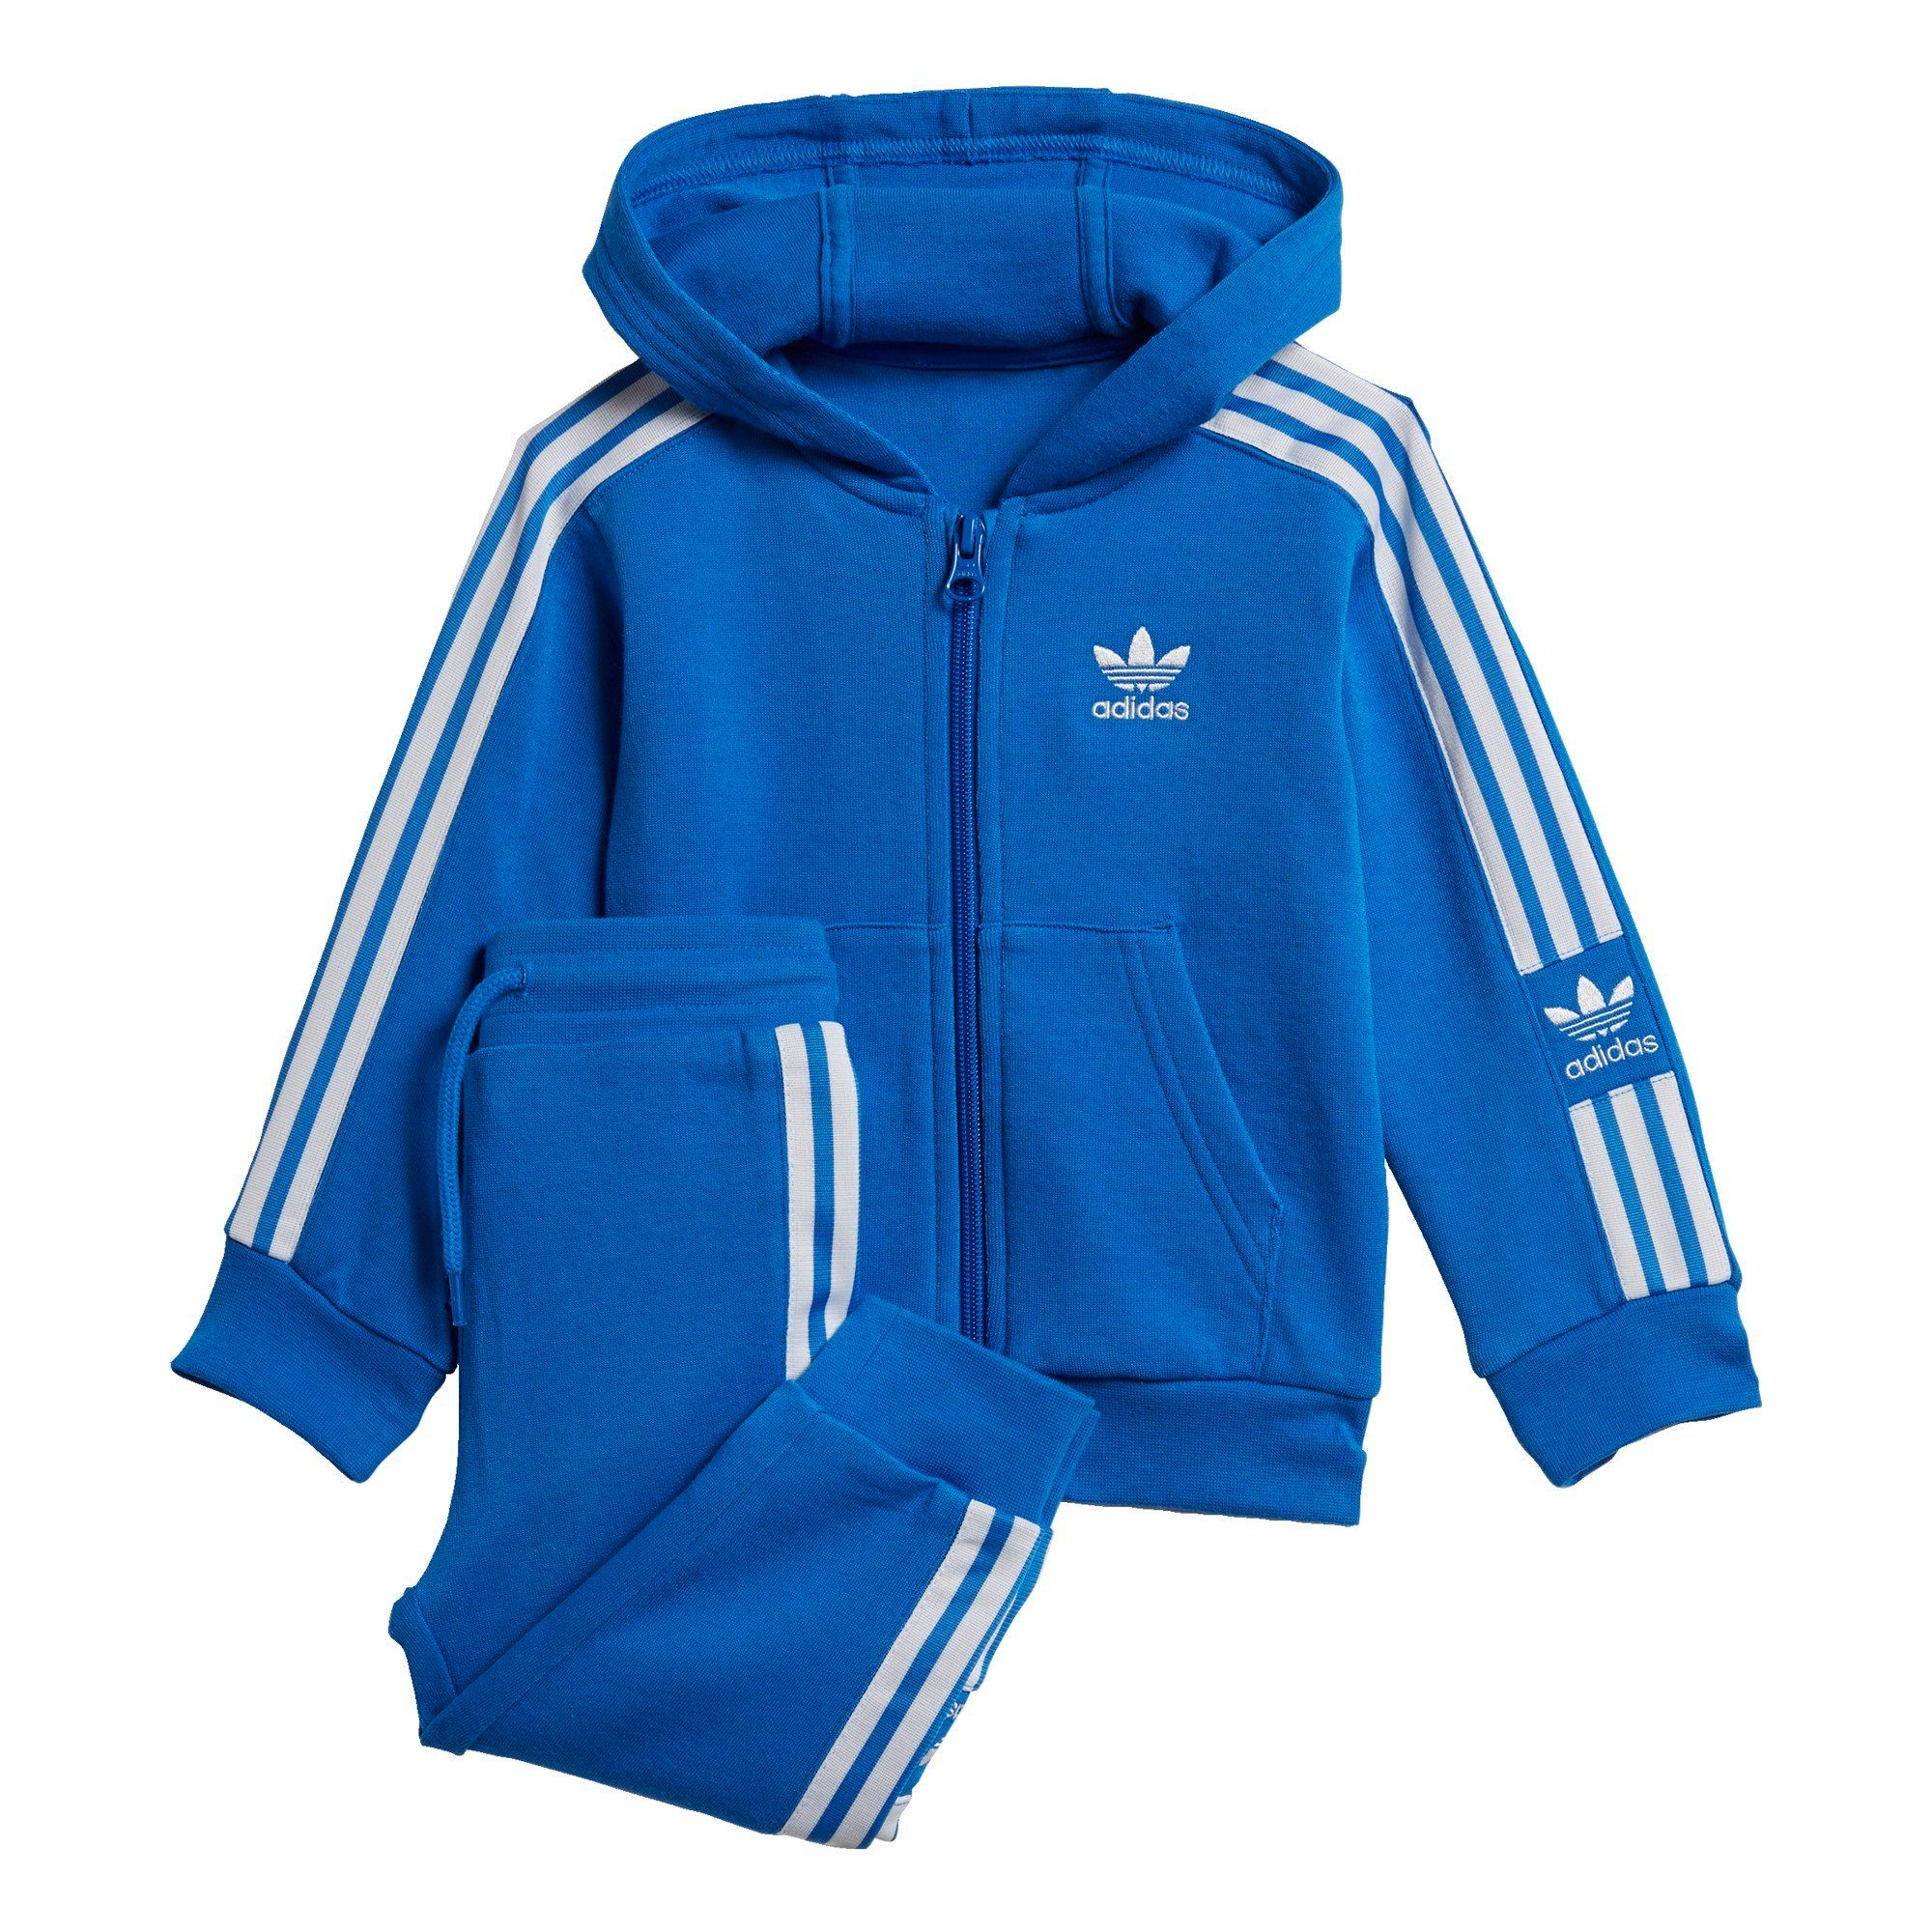 adidas Originals Trainingsanzug »New Icon Hoodie Set« online kaufen | OTTO